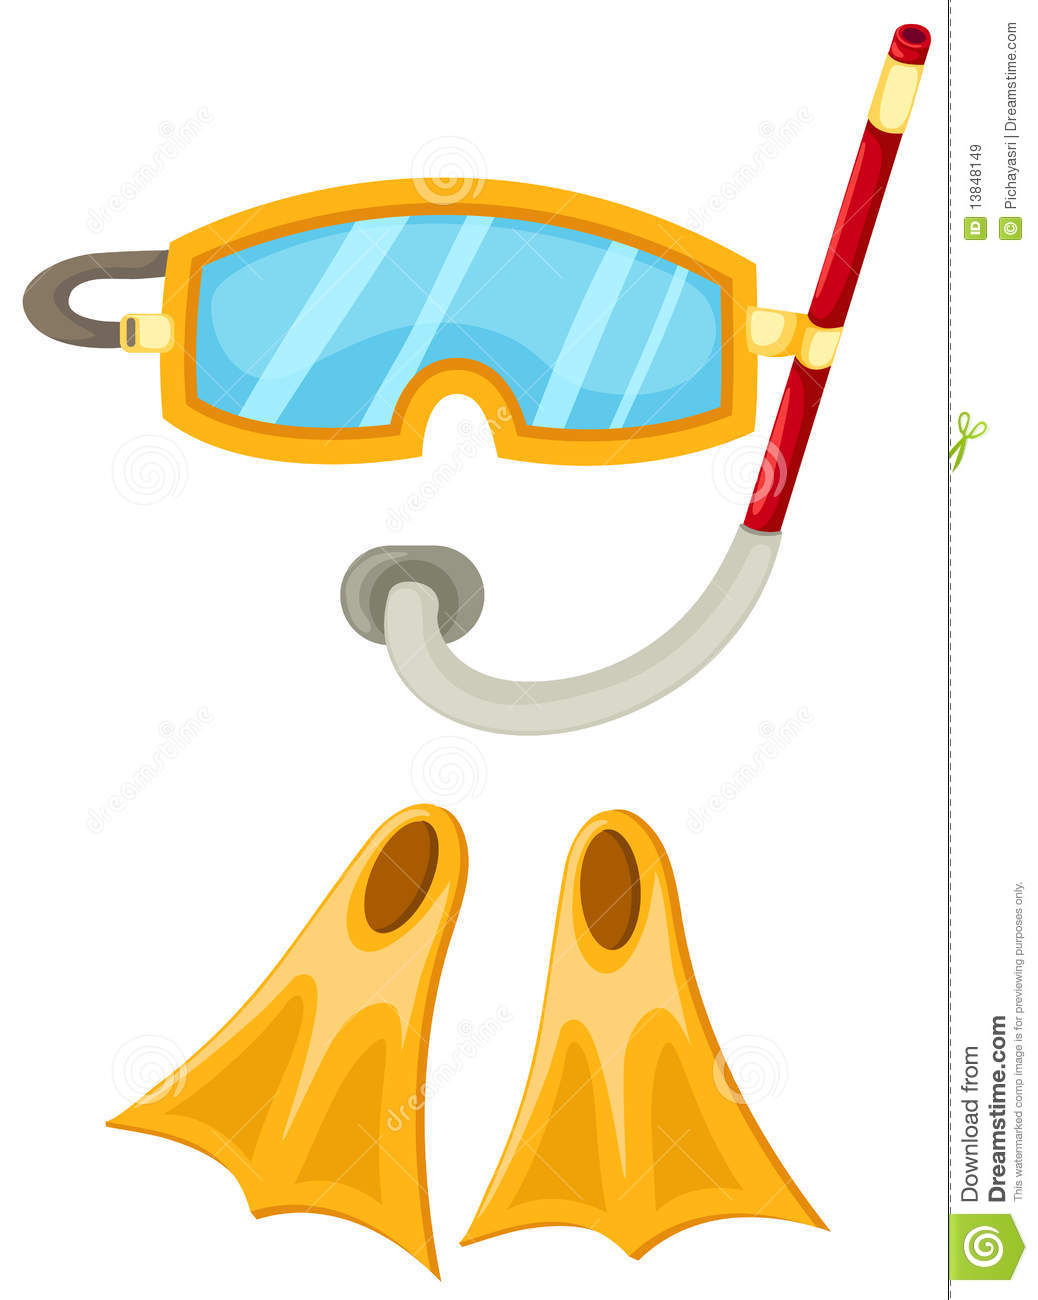 Snorkeling Equipment And Flippers Royalty Free Stock Images - Image ...